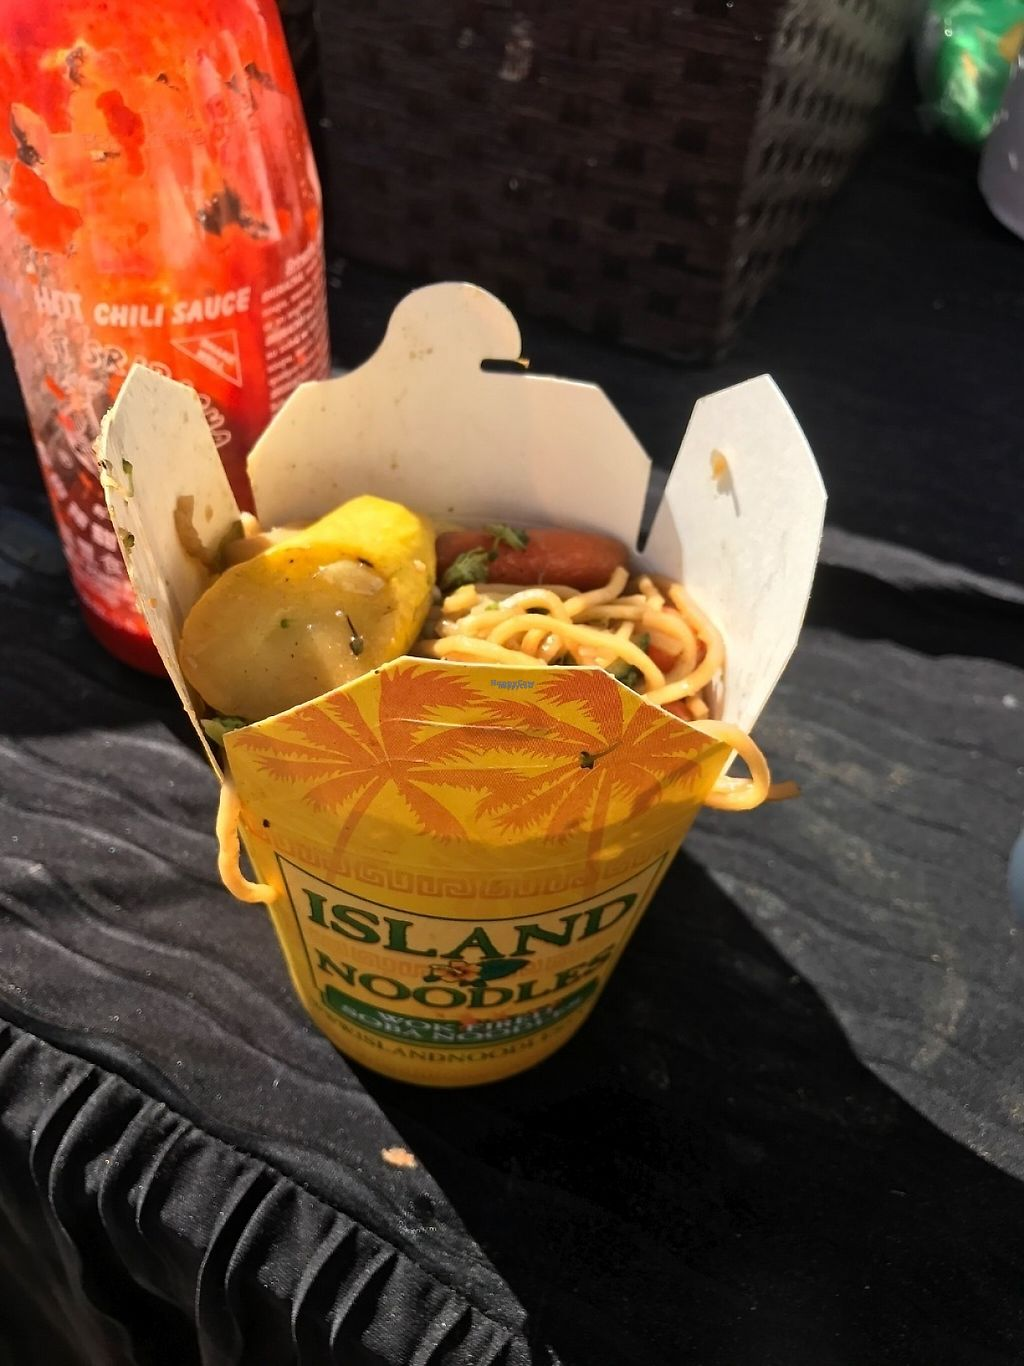 """Photo of Island Noodles  by <a href=""""/members/profile/Tigra220"""">Tigra220</a> <br/>Vegan noodles & veggies <br/> March 14, 2017  - <a href='/contact/abuse/image/88568/236051'>Report</a>"""